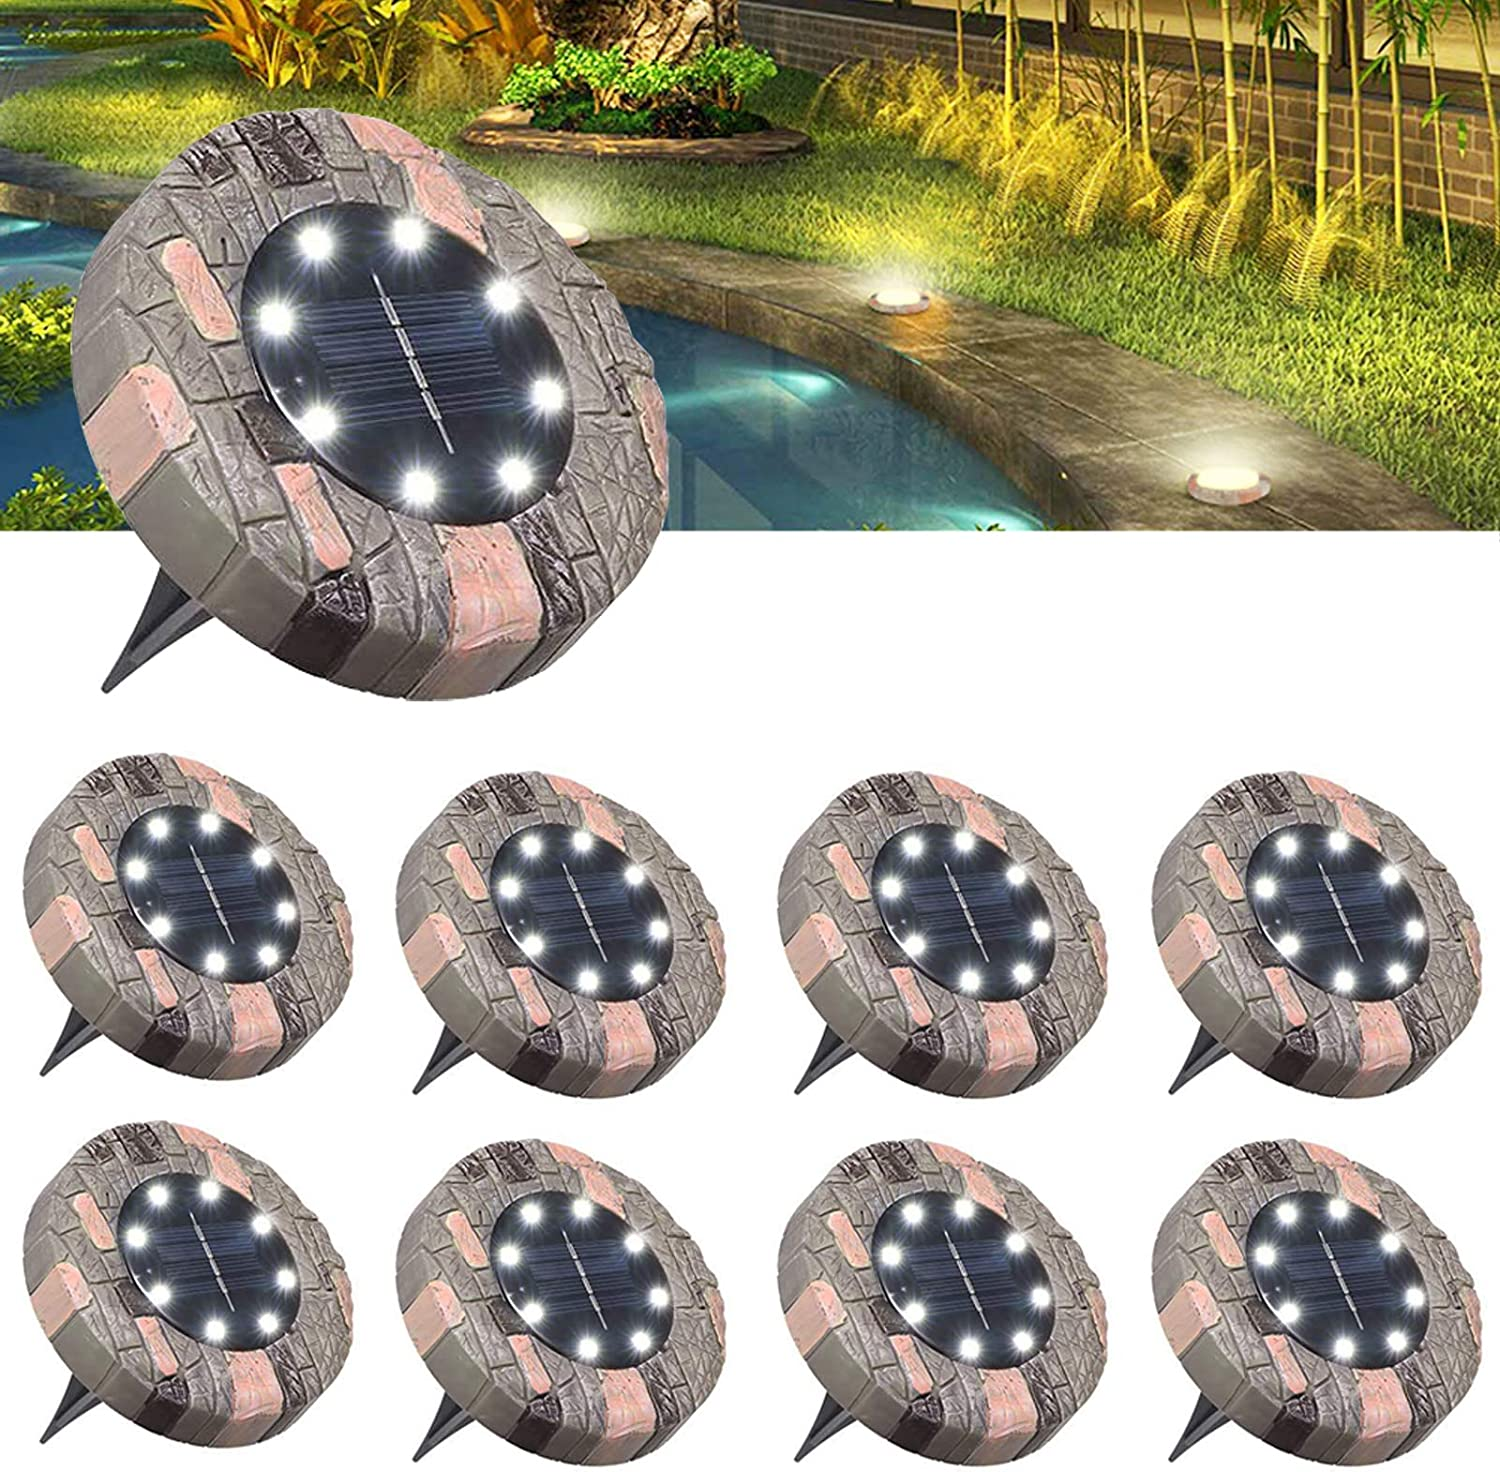 Solar Ground Lights, 8 LED Solar Disk Light Outdoor Garden In-ground Lighting for Patio Landscape, Lawn, Pathway, Yard, Walkway 8 Packs Idefair